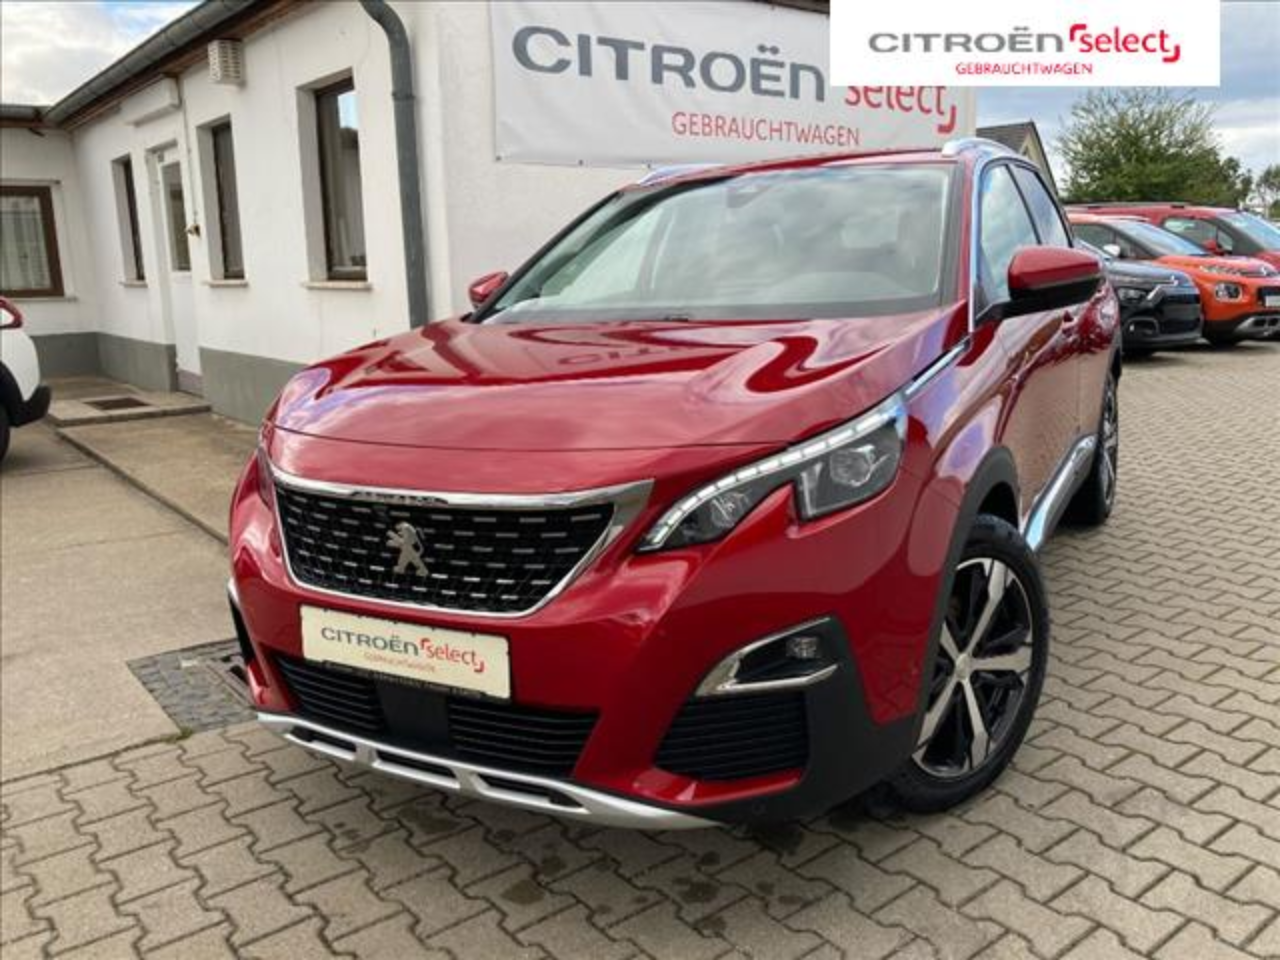 Peugeot 3008 BlueHDi 130 S&S Aut. Allure, Full LED, Navi